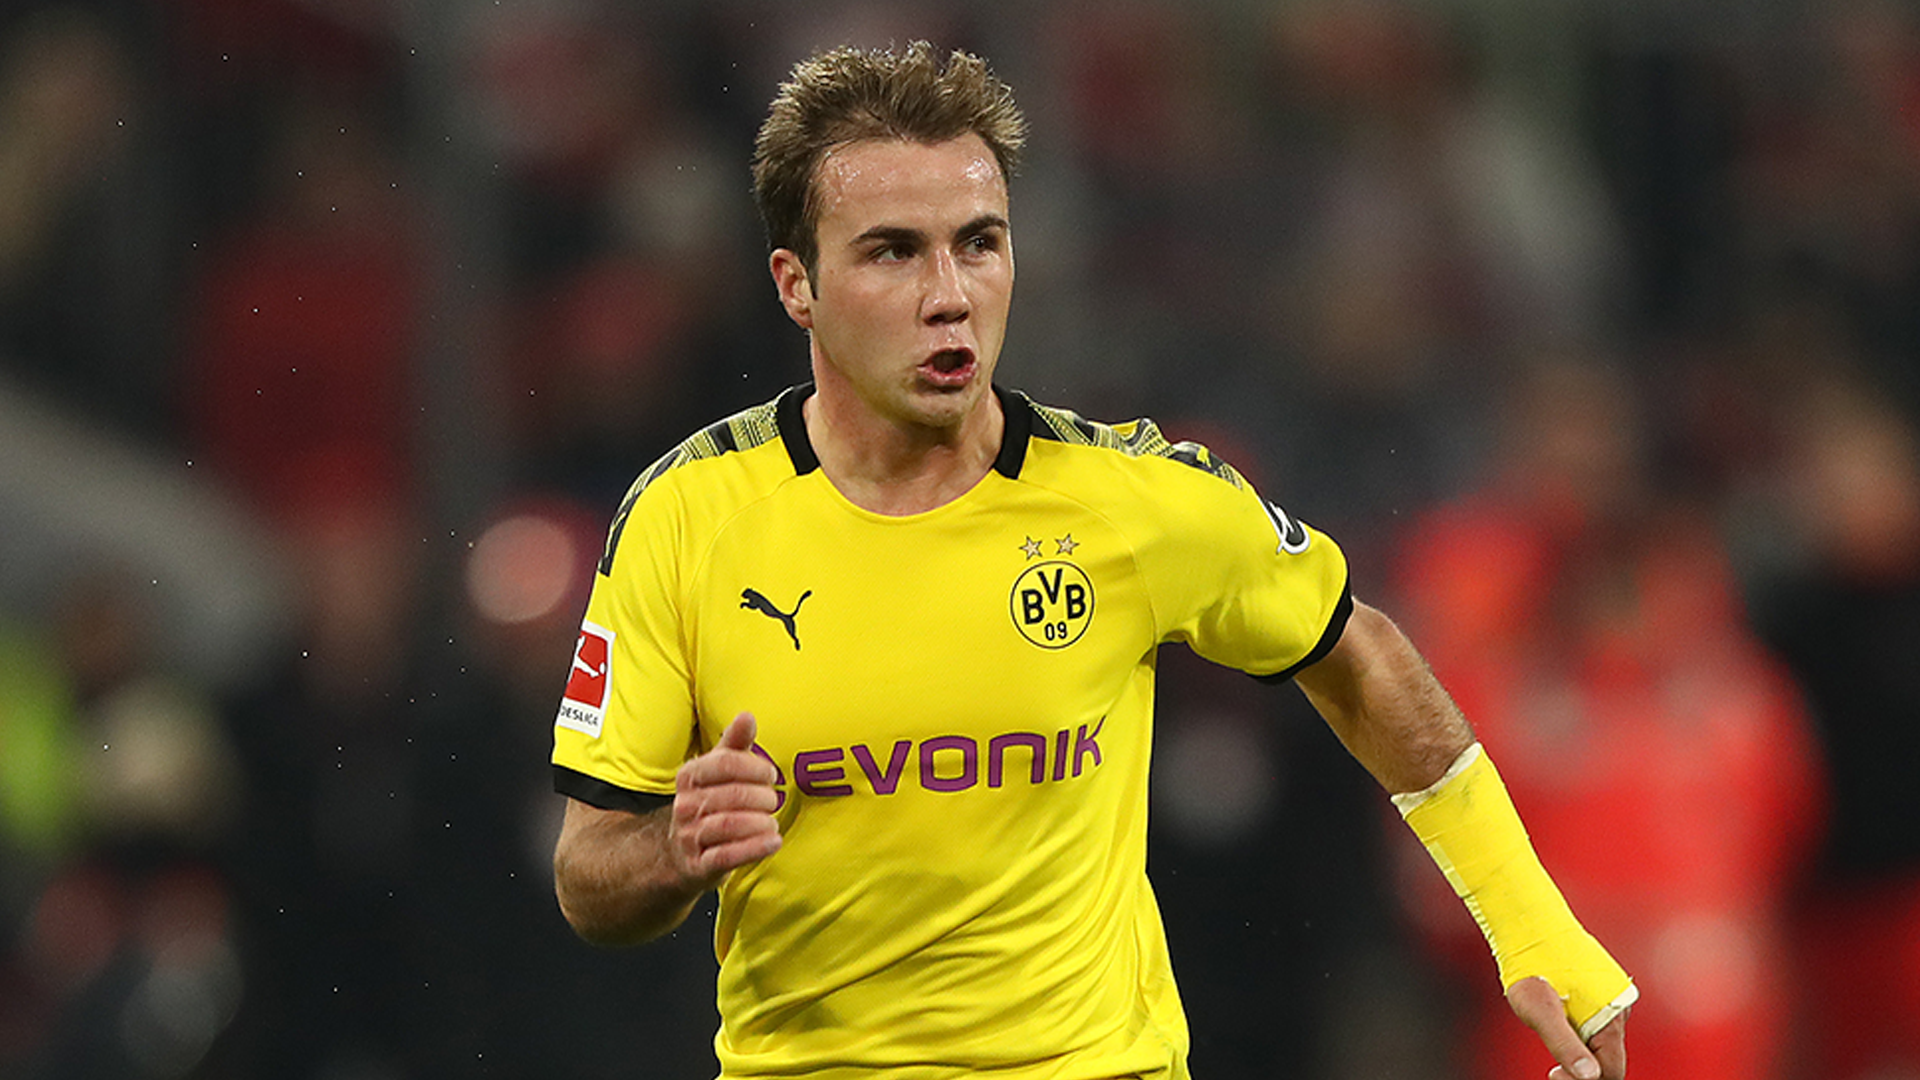 'Final decision' on Gotze's Dortmund future hasn't been made - Zorc